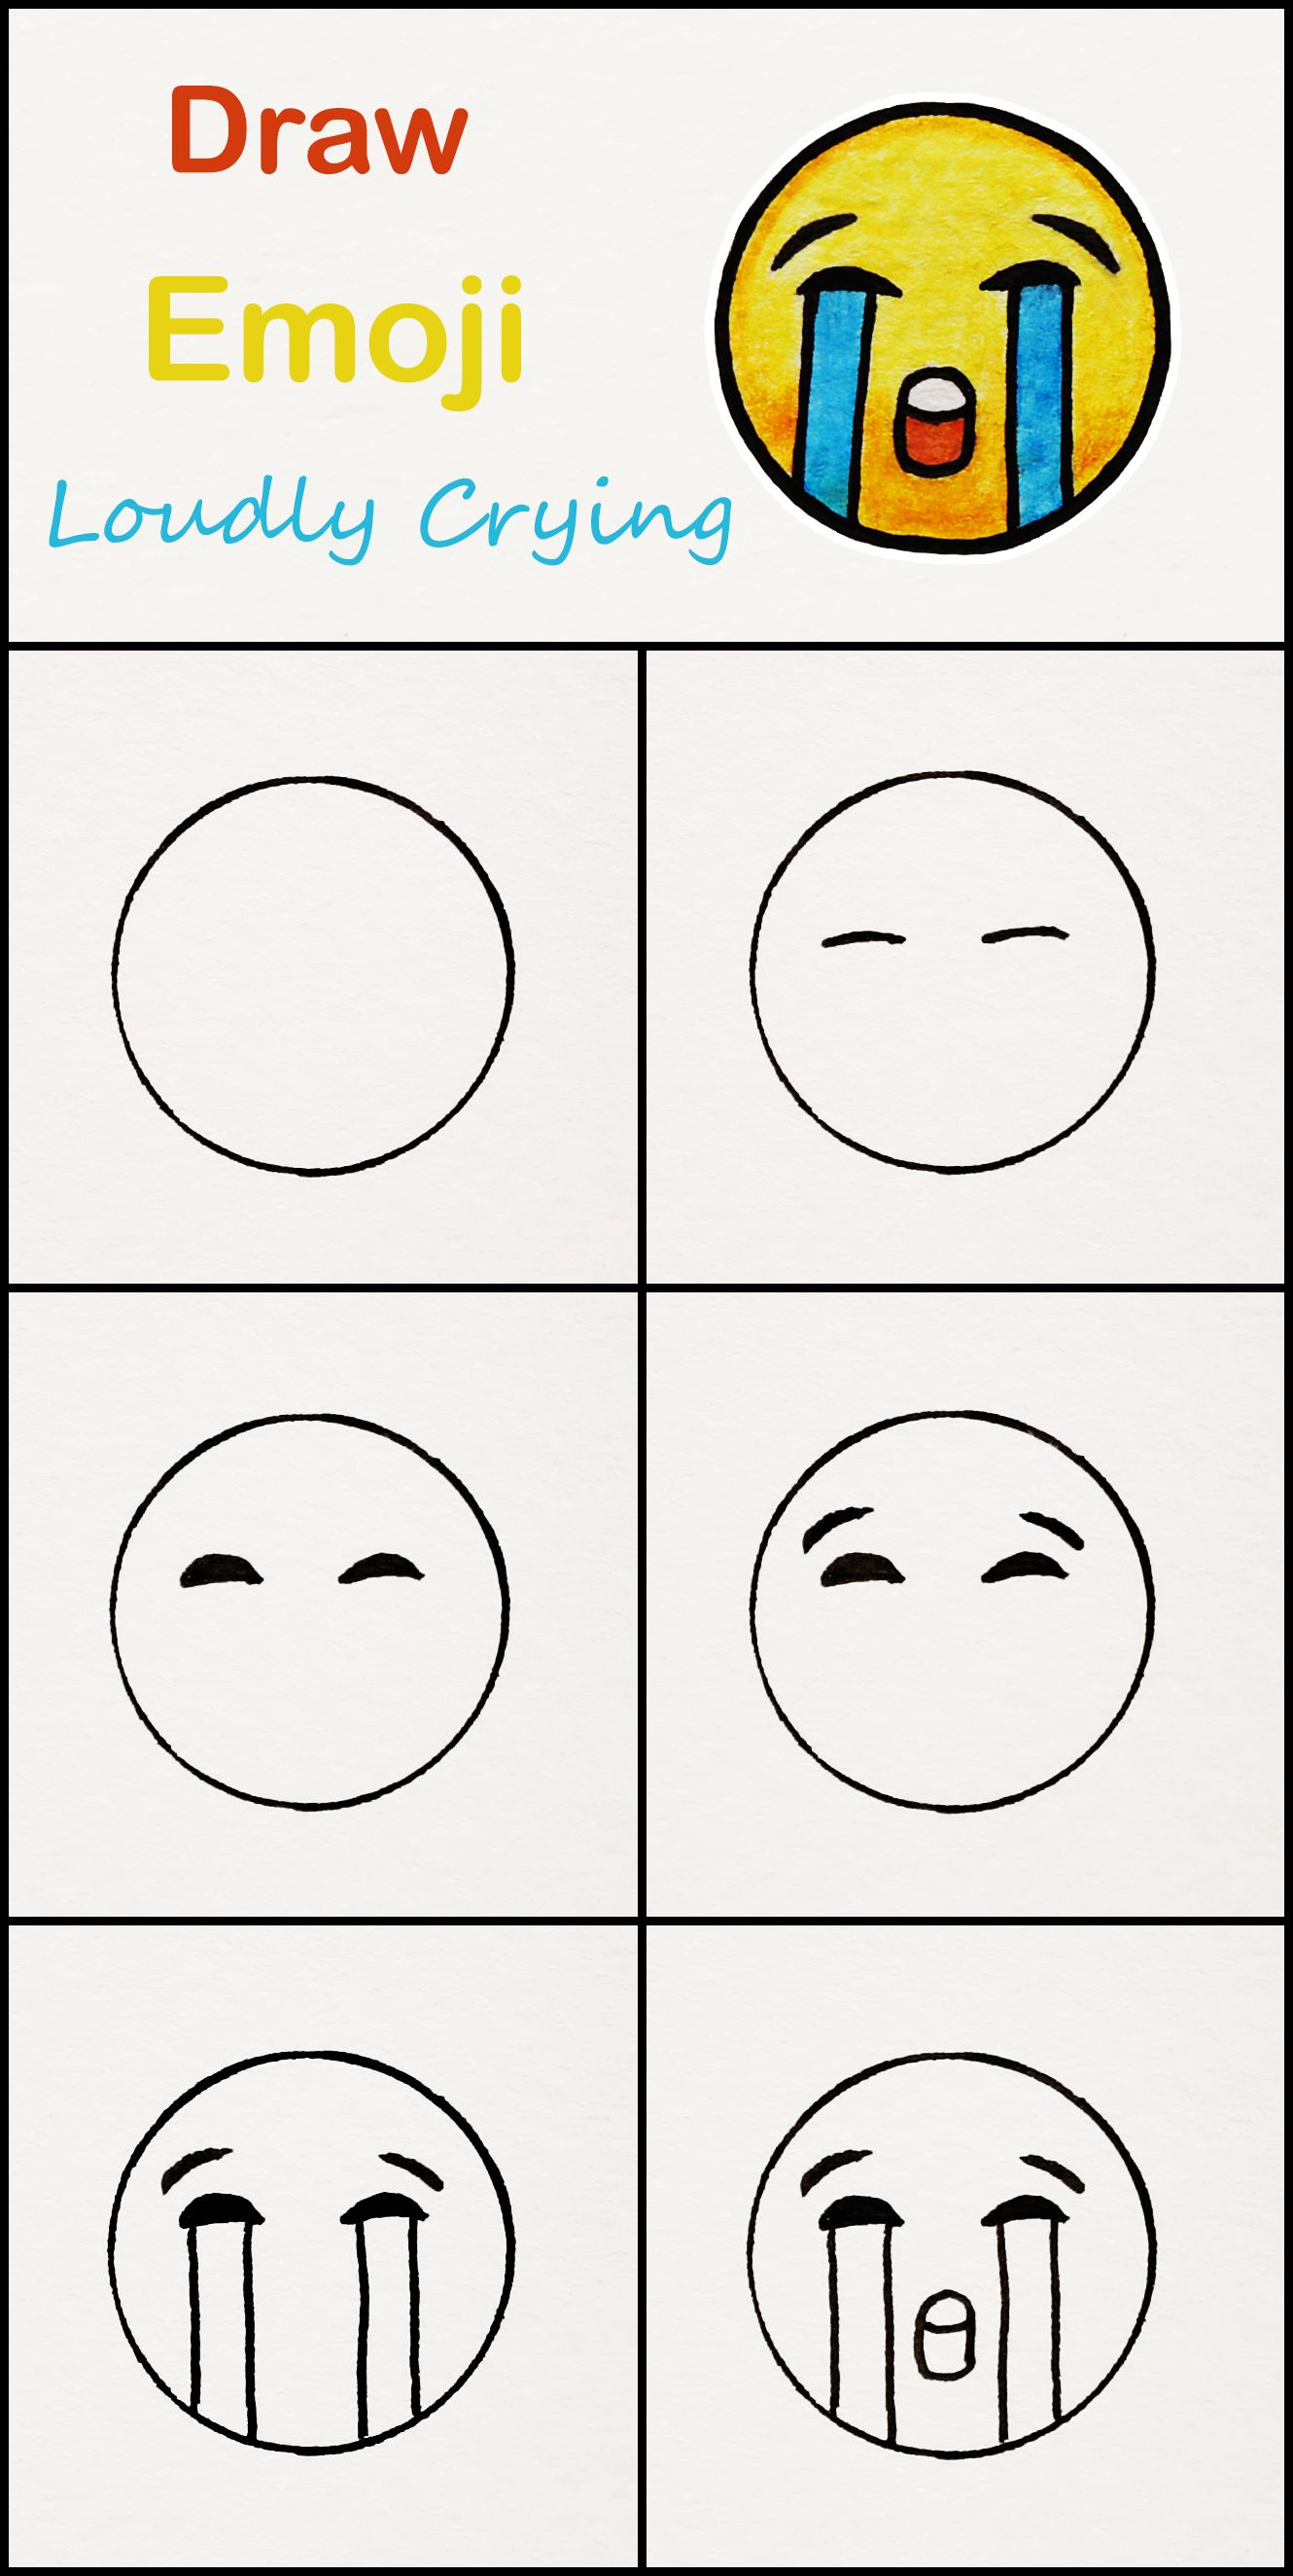 Learn How To Draw The Loudly Crying Emoji Step By Step Very Simple Tutorial Face Drawings Emoji Tutor Easy Doodle Art Easy Drawings Drawing Tutorial Easy